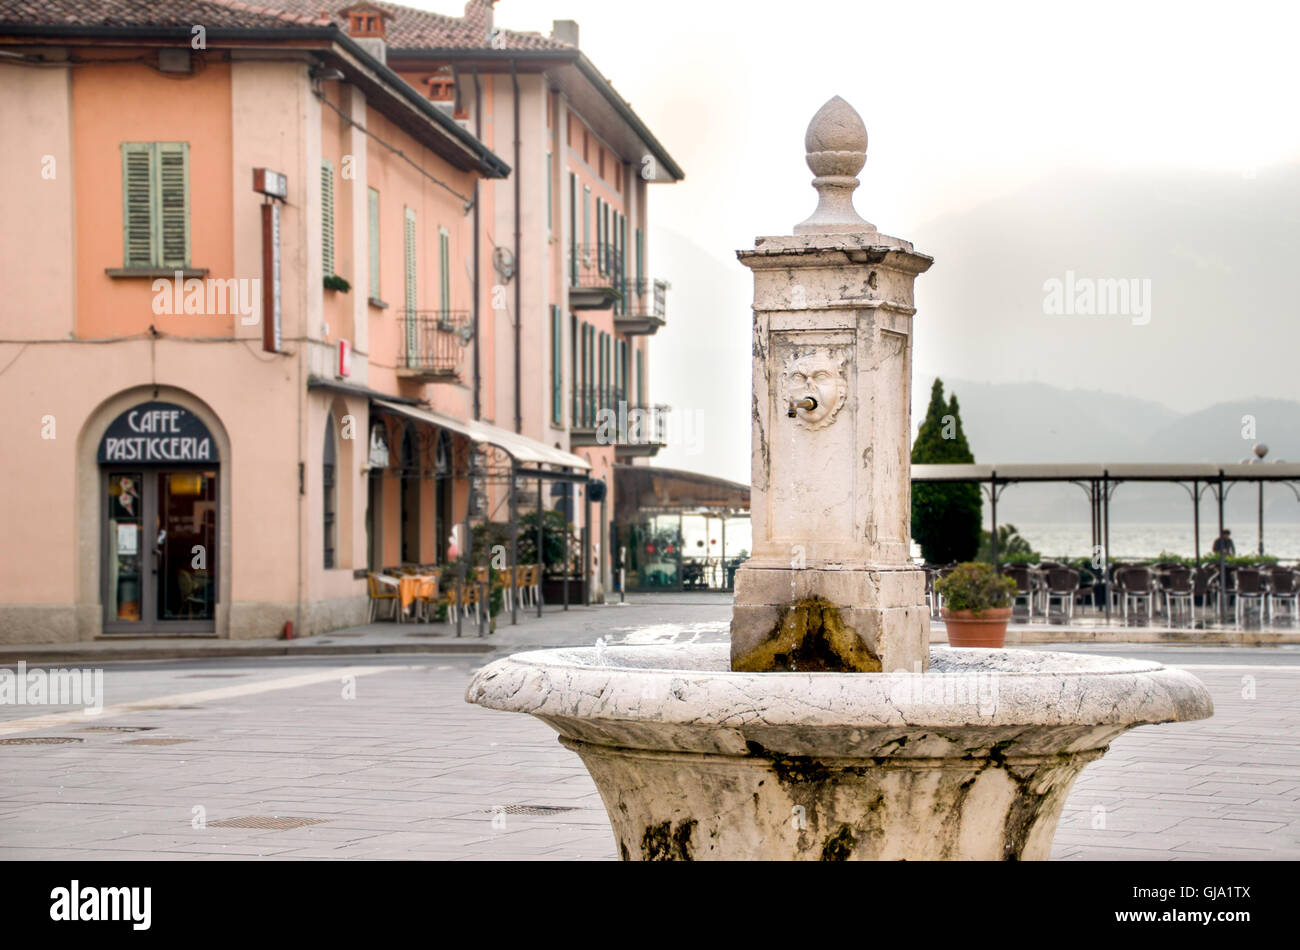 Pisogne, Italy - February 16, 2013: ancient fountain in the town center of Pisogne on the Iseo Lake shore - Stock Image